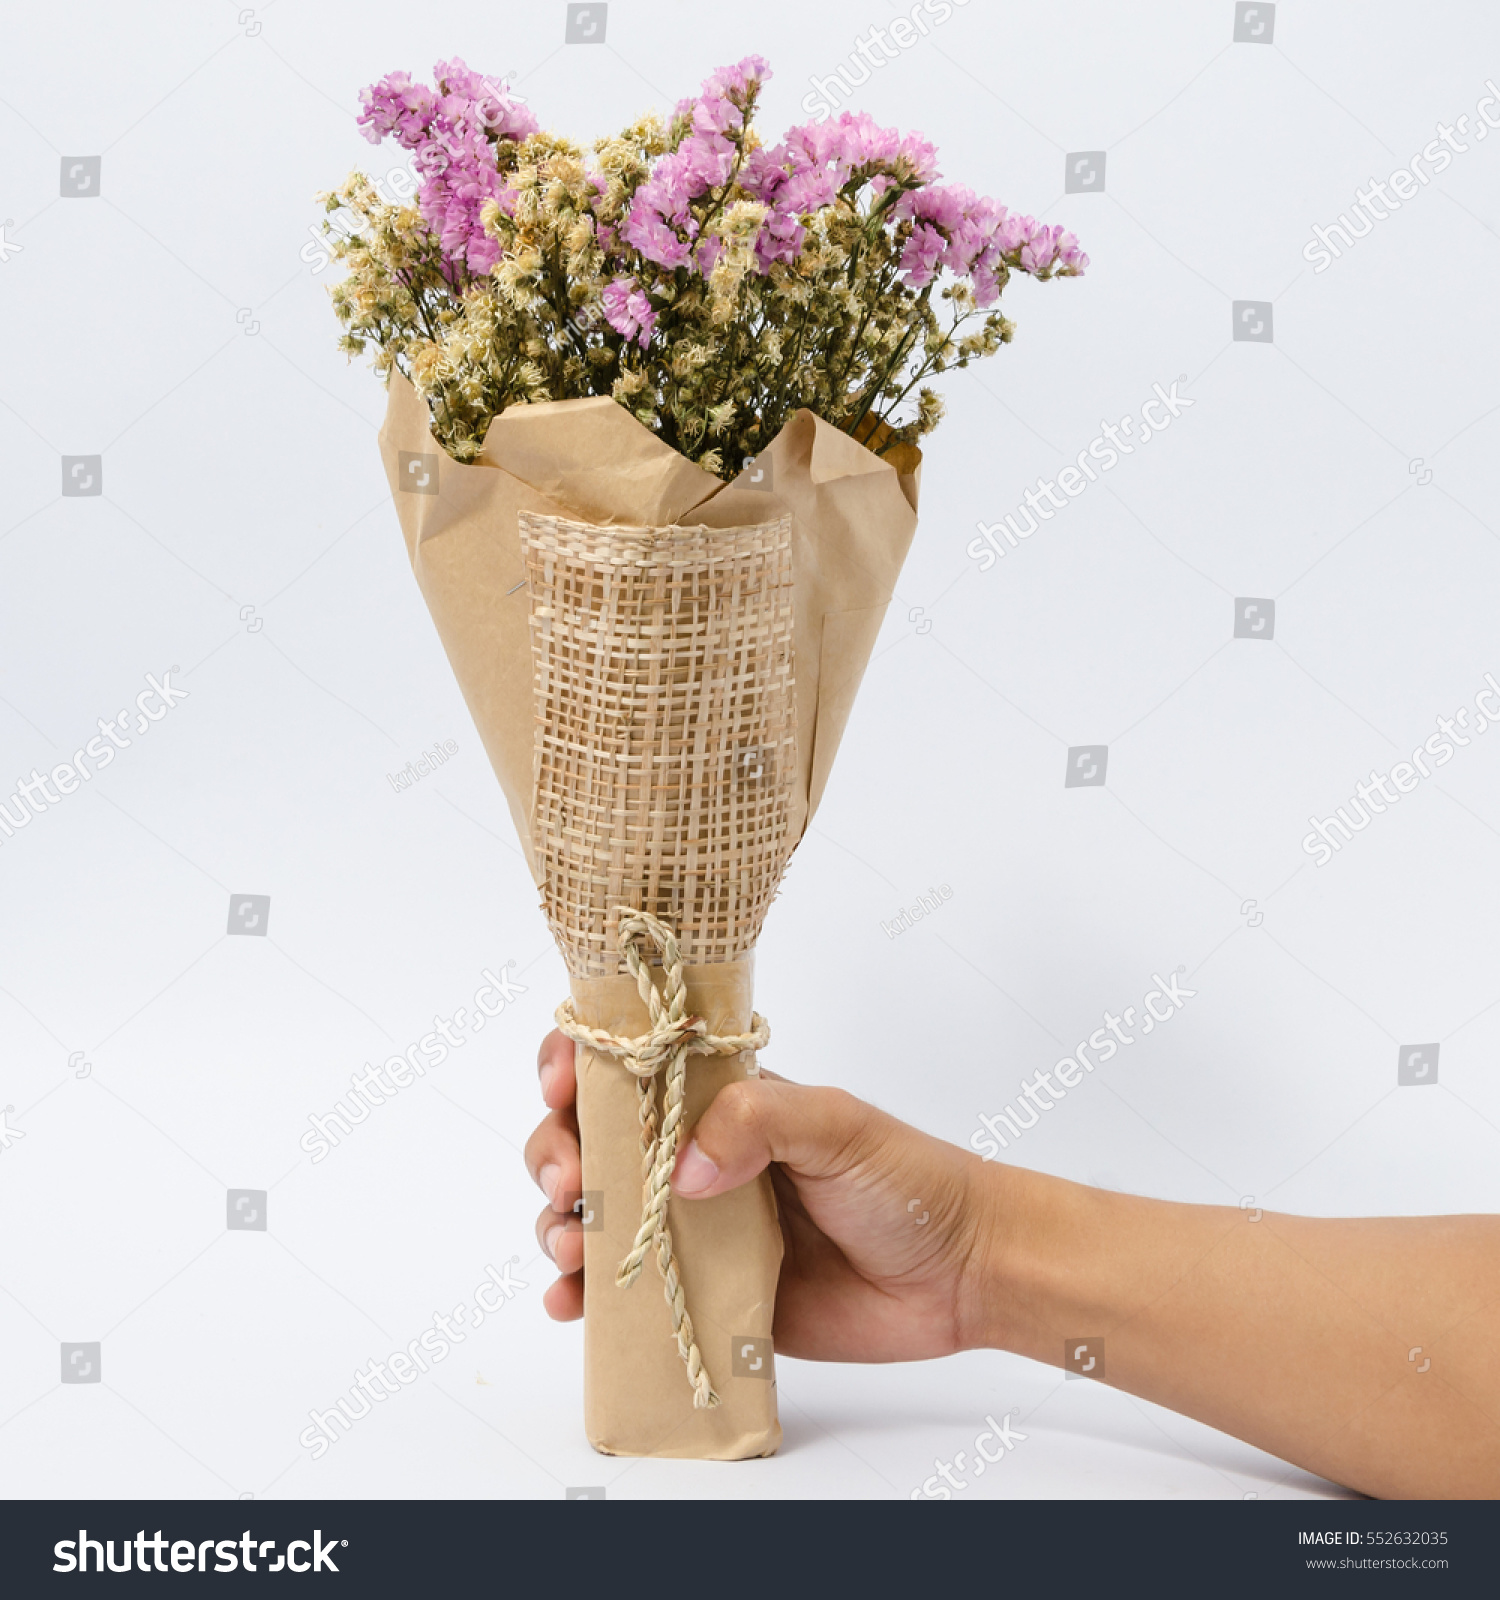 Bouquet beautiful dry flowers wrapped brown stok fotoraf 552632035 bouquet beautiful dry flowers wrapped brown stok fotoraf 552632035 shutterstock izmirmasajfo